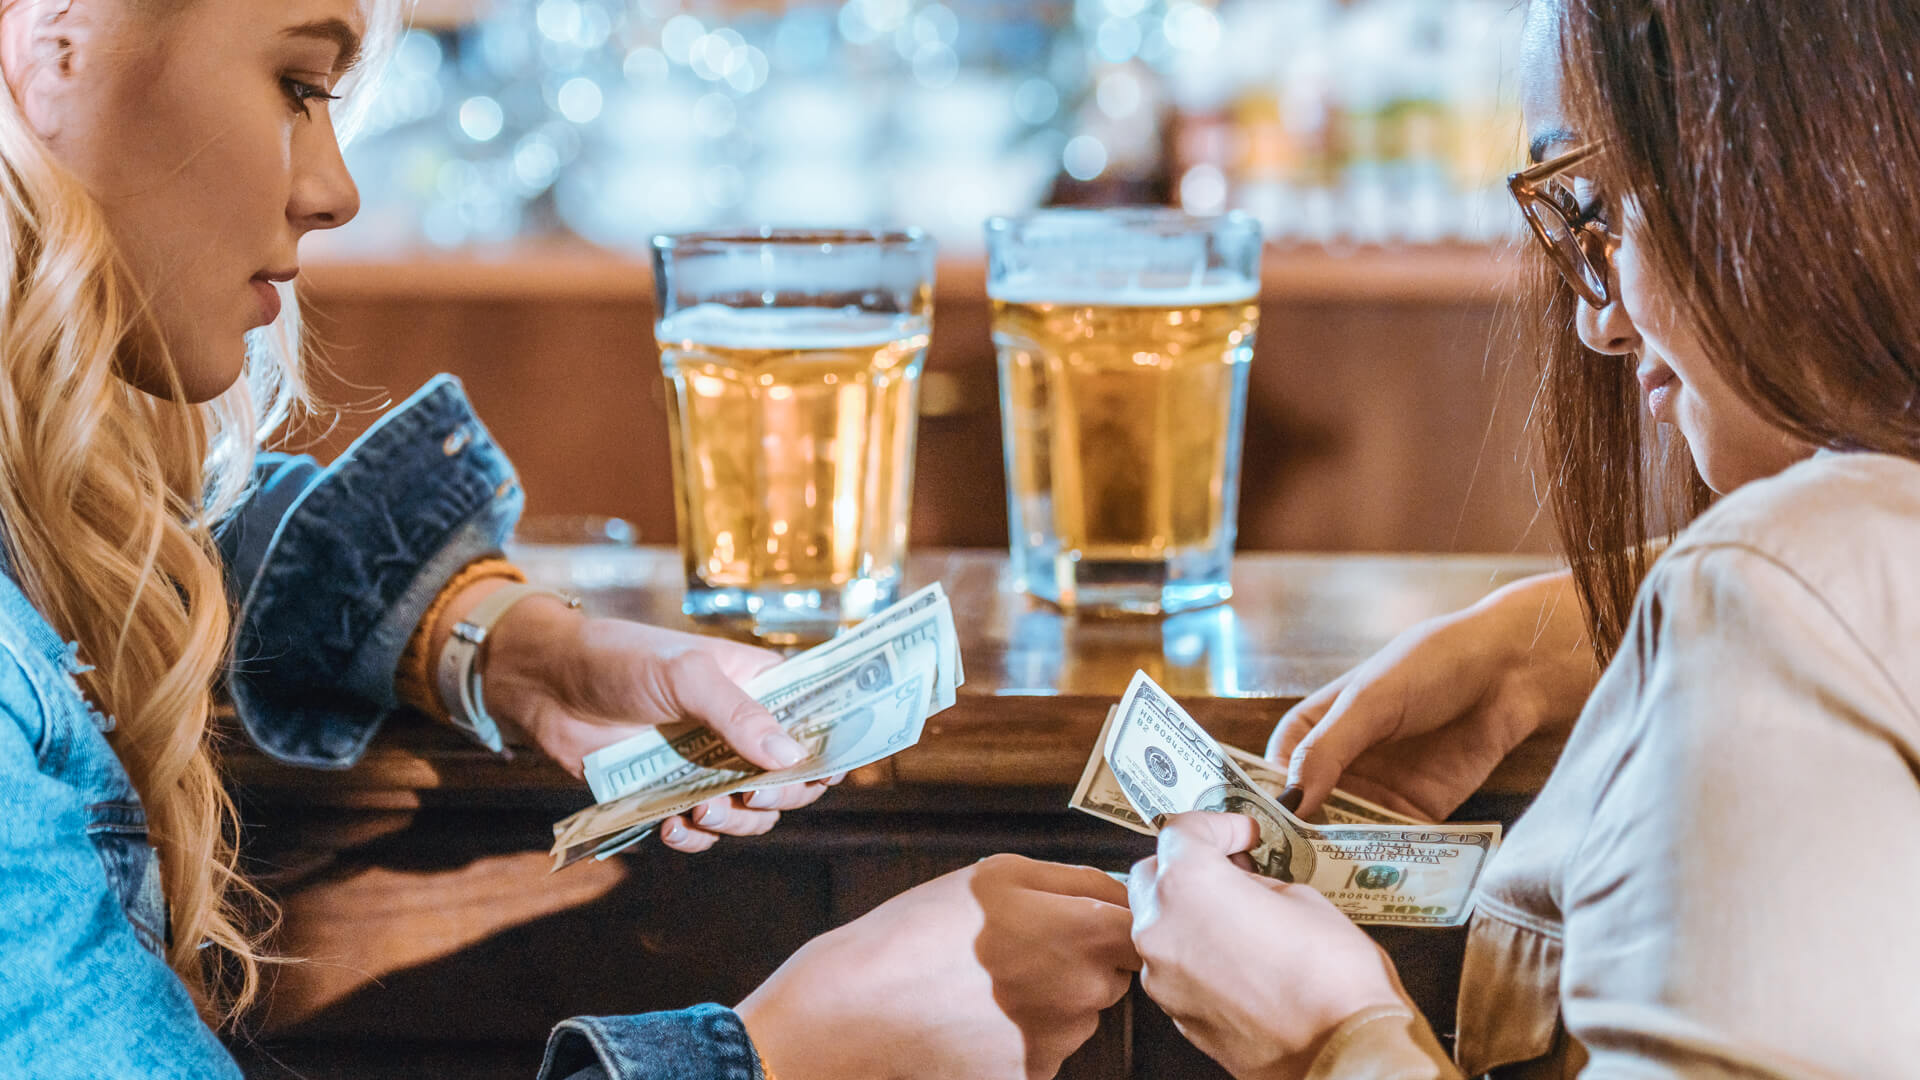 https://cdn.gobankingrates.com/wp-content/uploads/2019/03/Two-girls-with-money-paying-for-drinks-at-the-bar-iStock-963862040.jpg